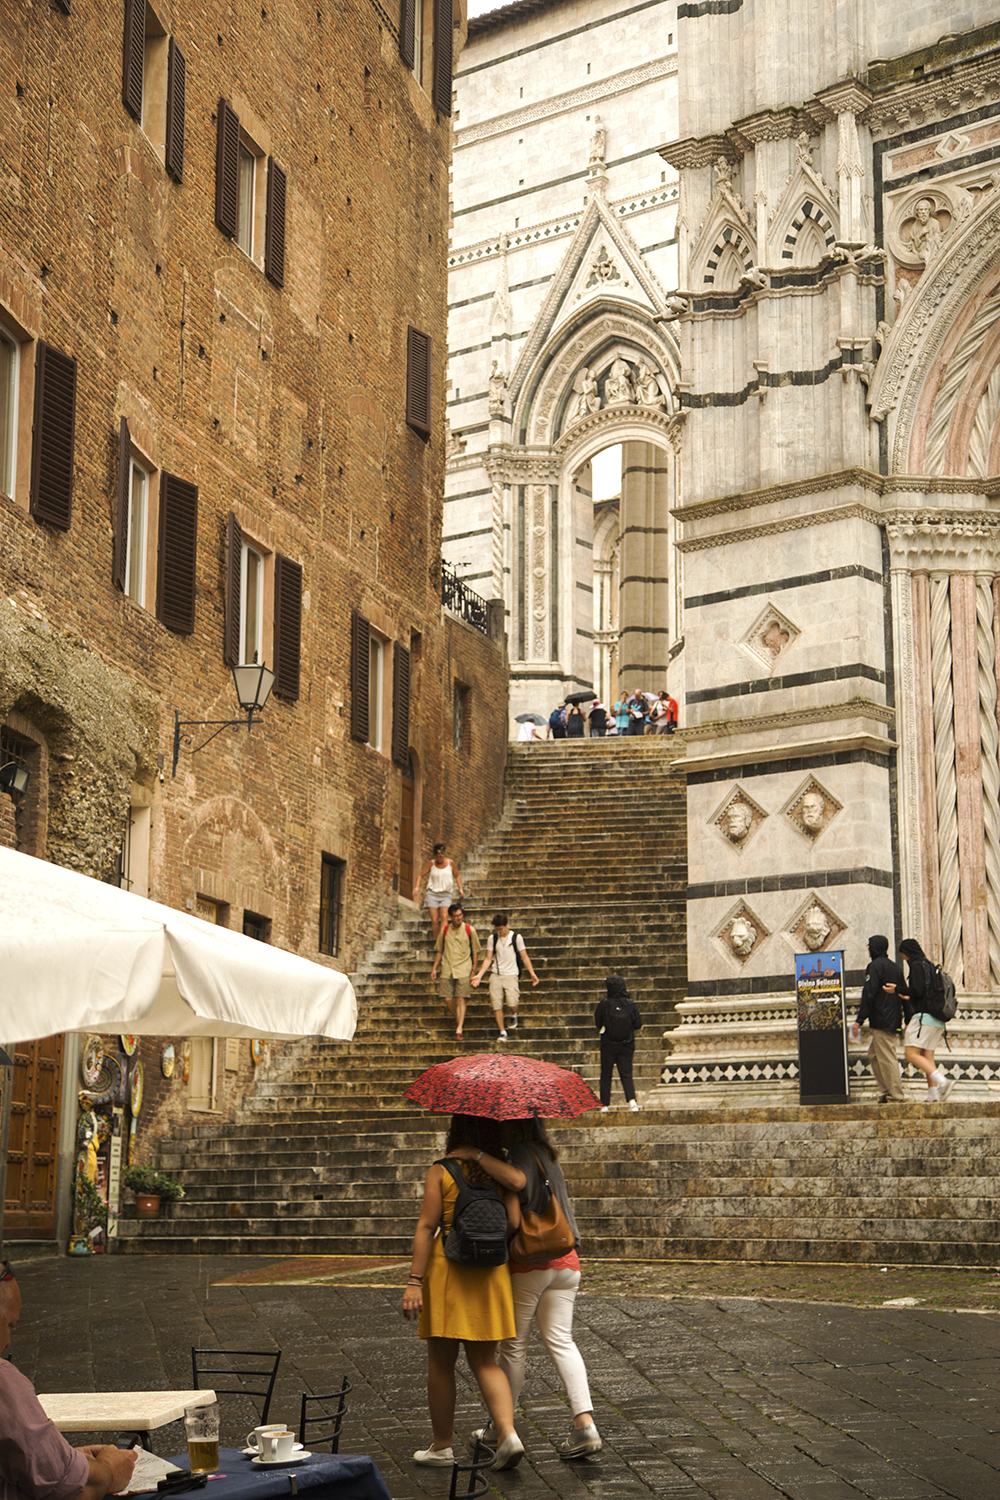 Suffusing My Senses In Siena - Image 17